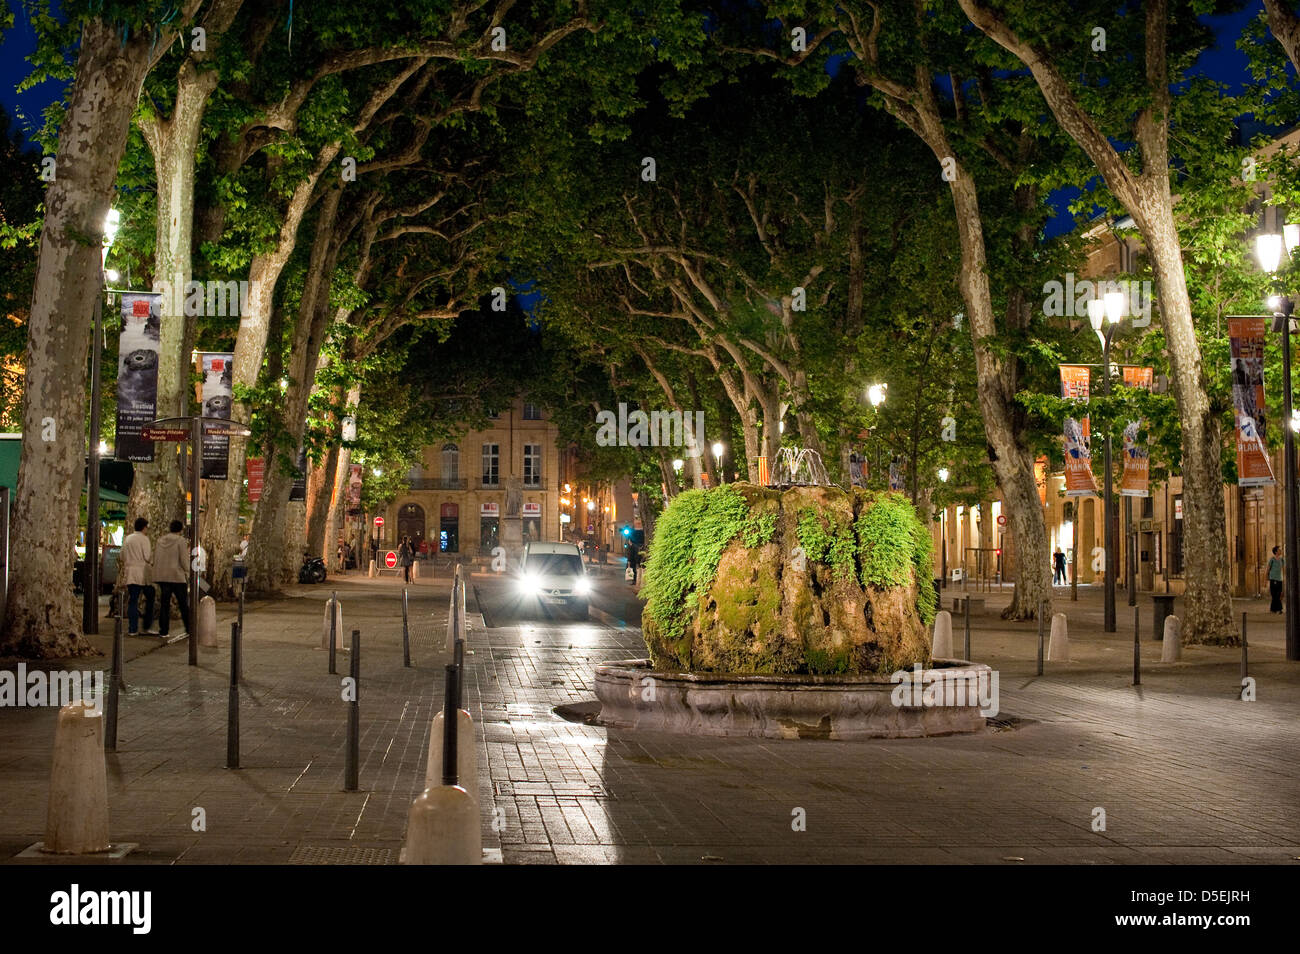 The Cours Mirabeau at night , Aix-en-Provence, France. - Stock Image